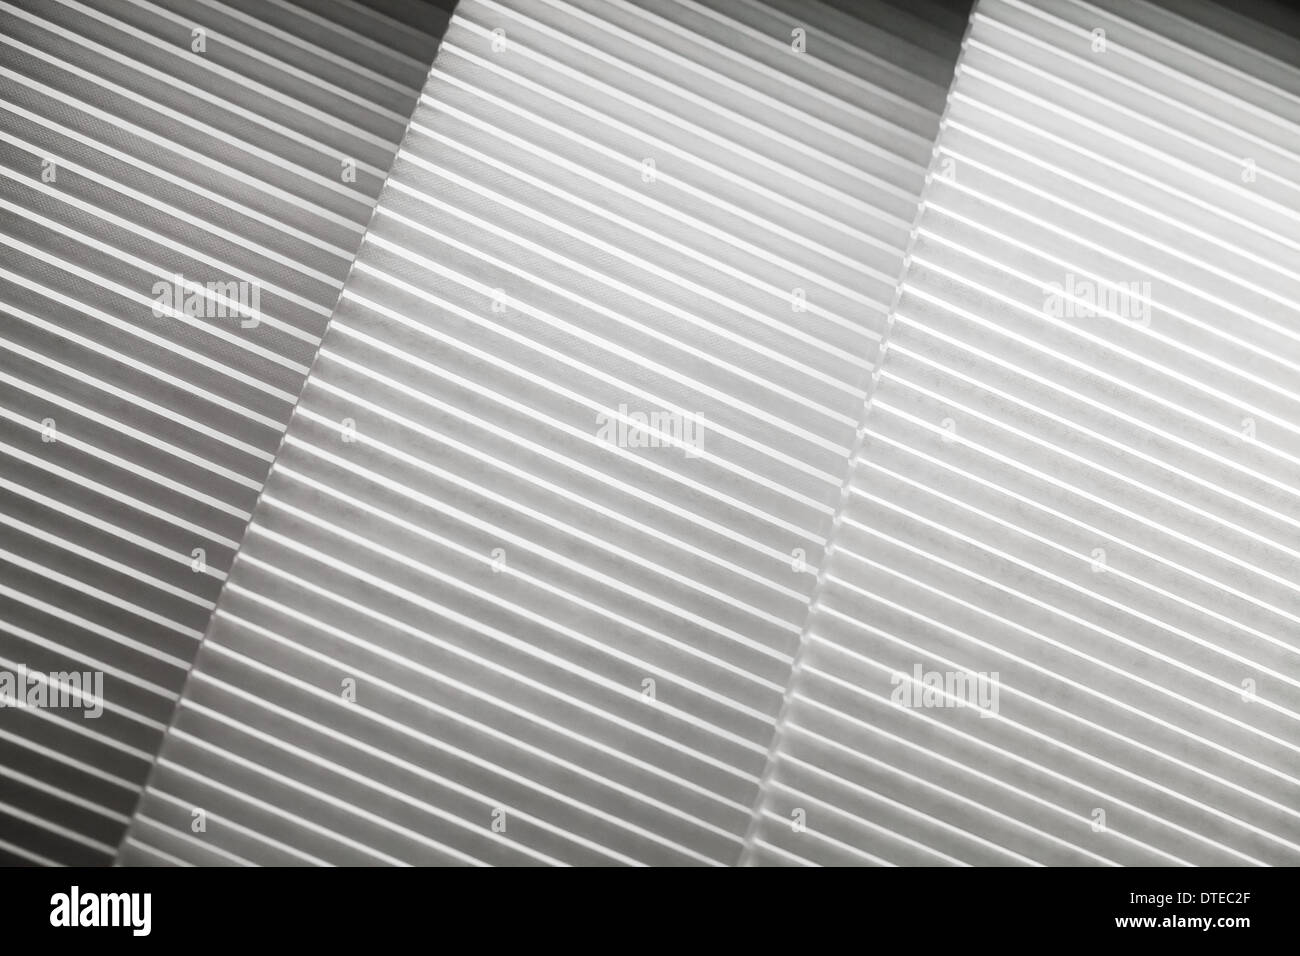 Abstract photo background with white louvers layers - Stock Image